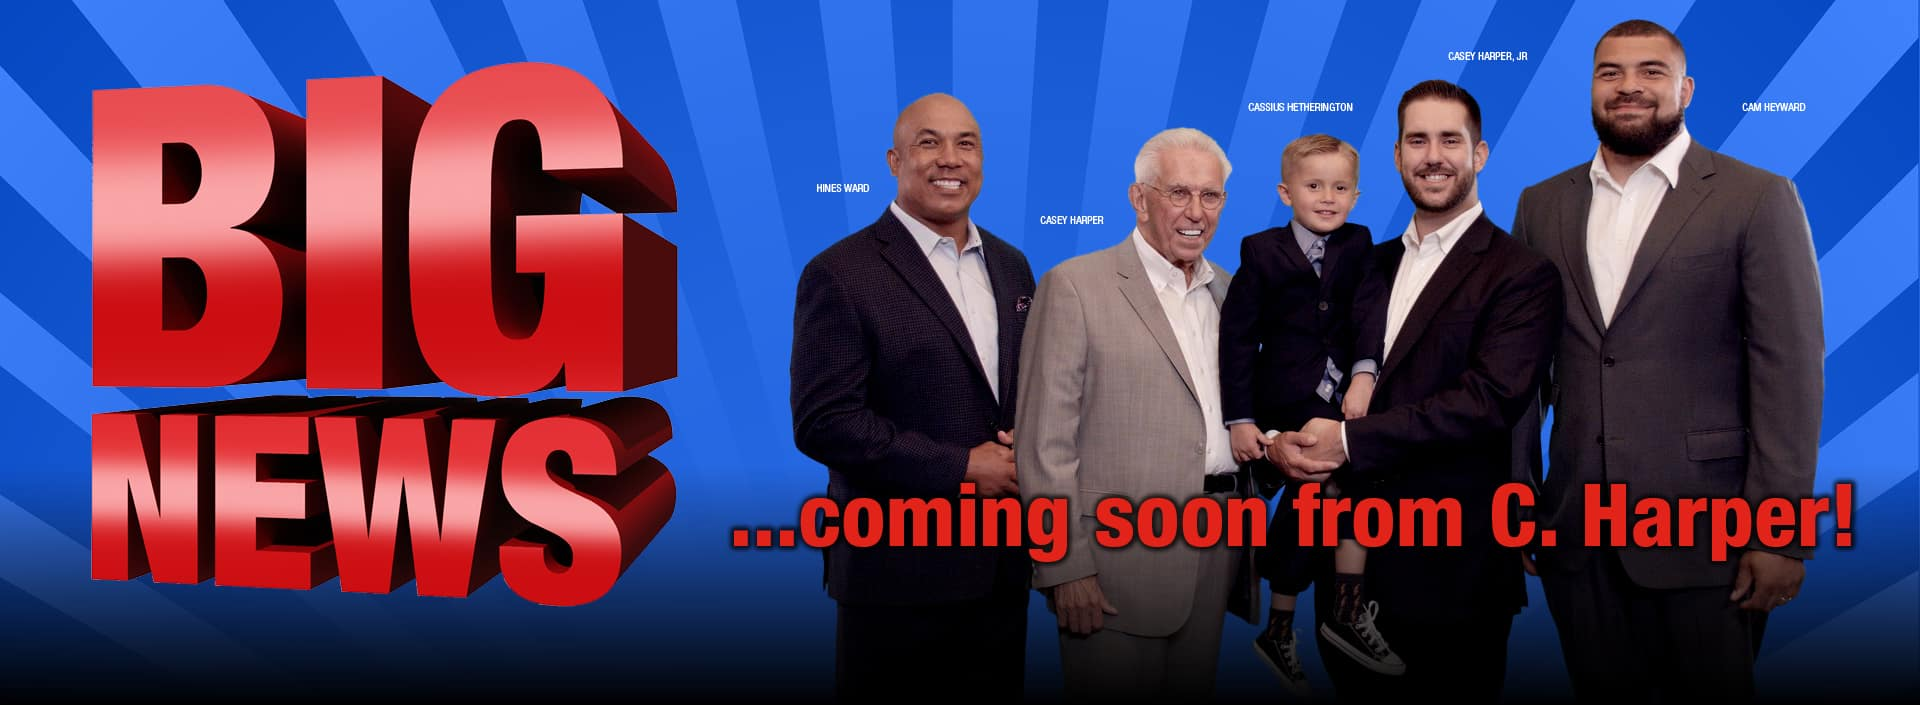 Coming Soon... Big News from C. Harper